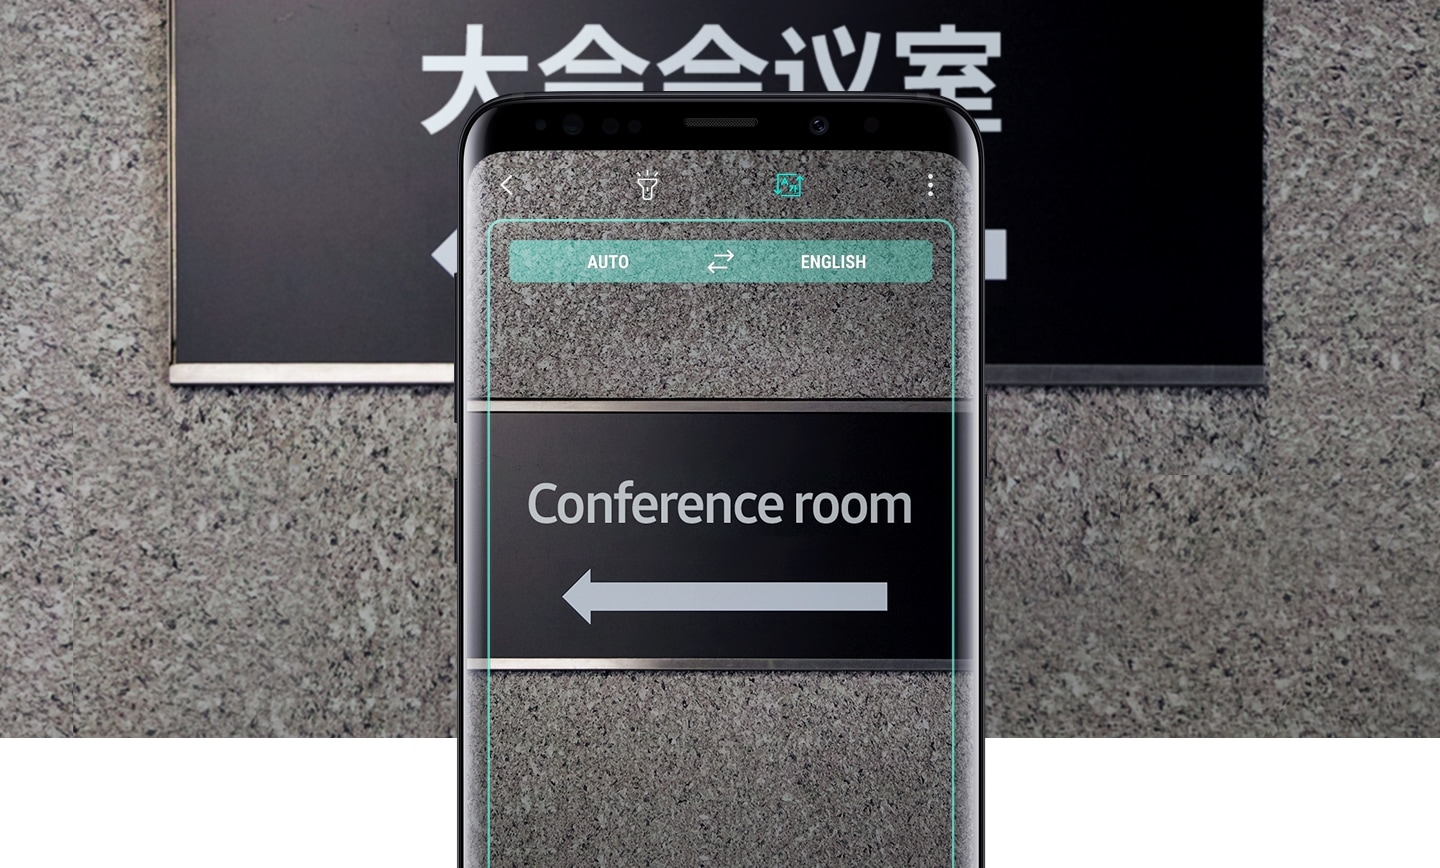 Galaxy S9 or S9+ displaying Live Translation GUI with translated sign on-screen and untranslated sign in the background